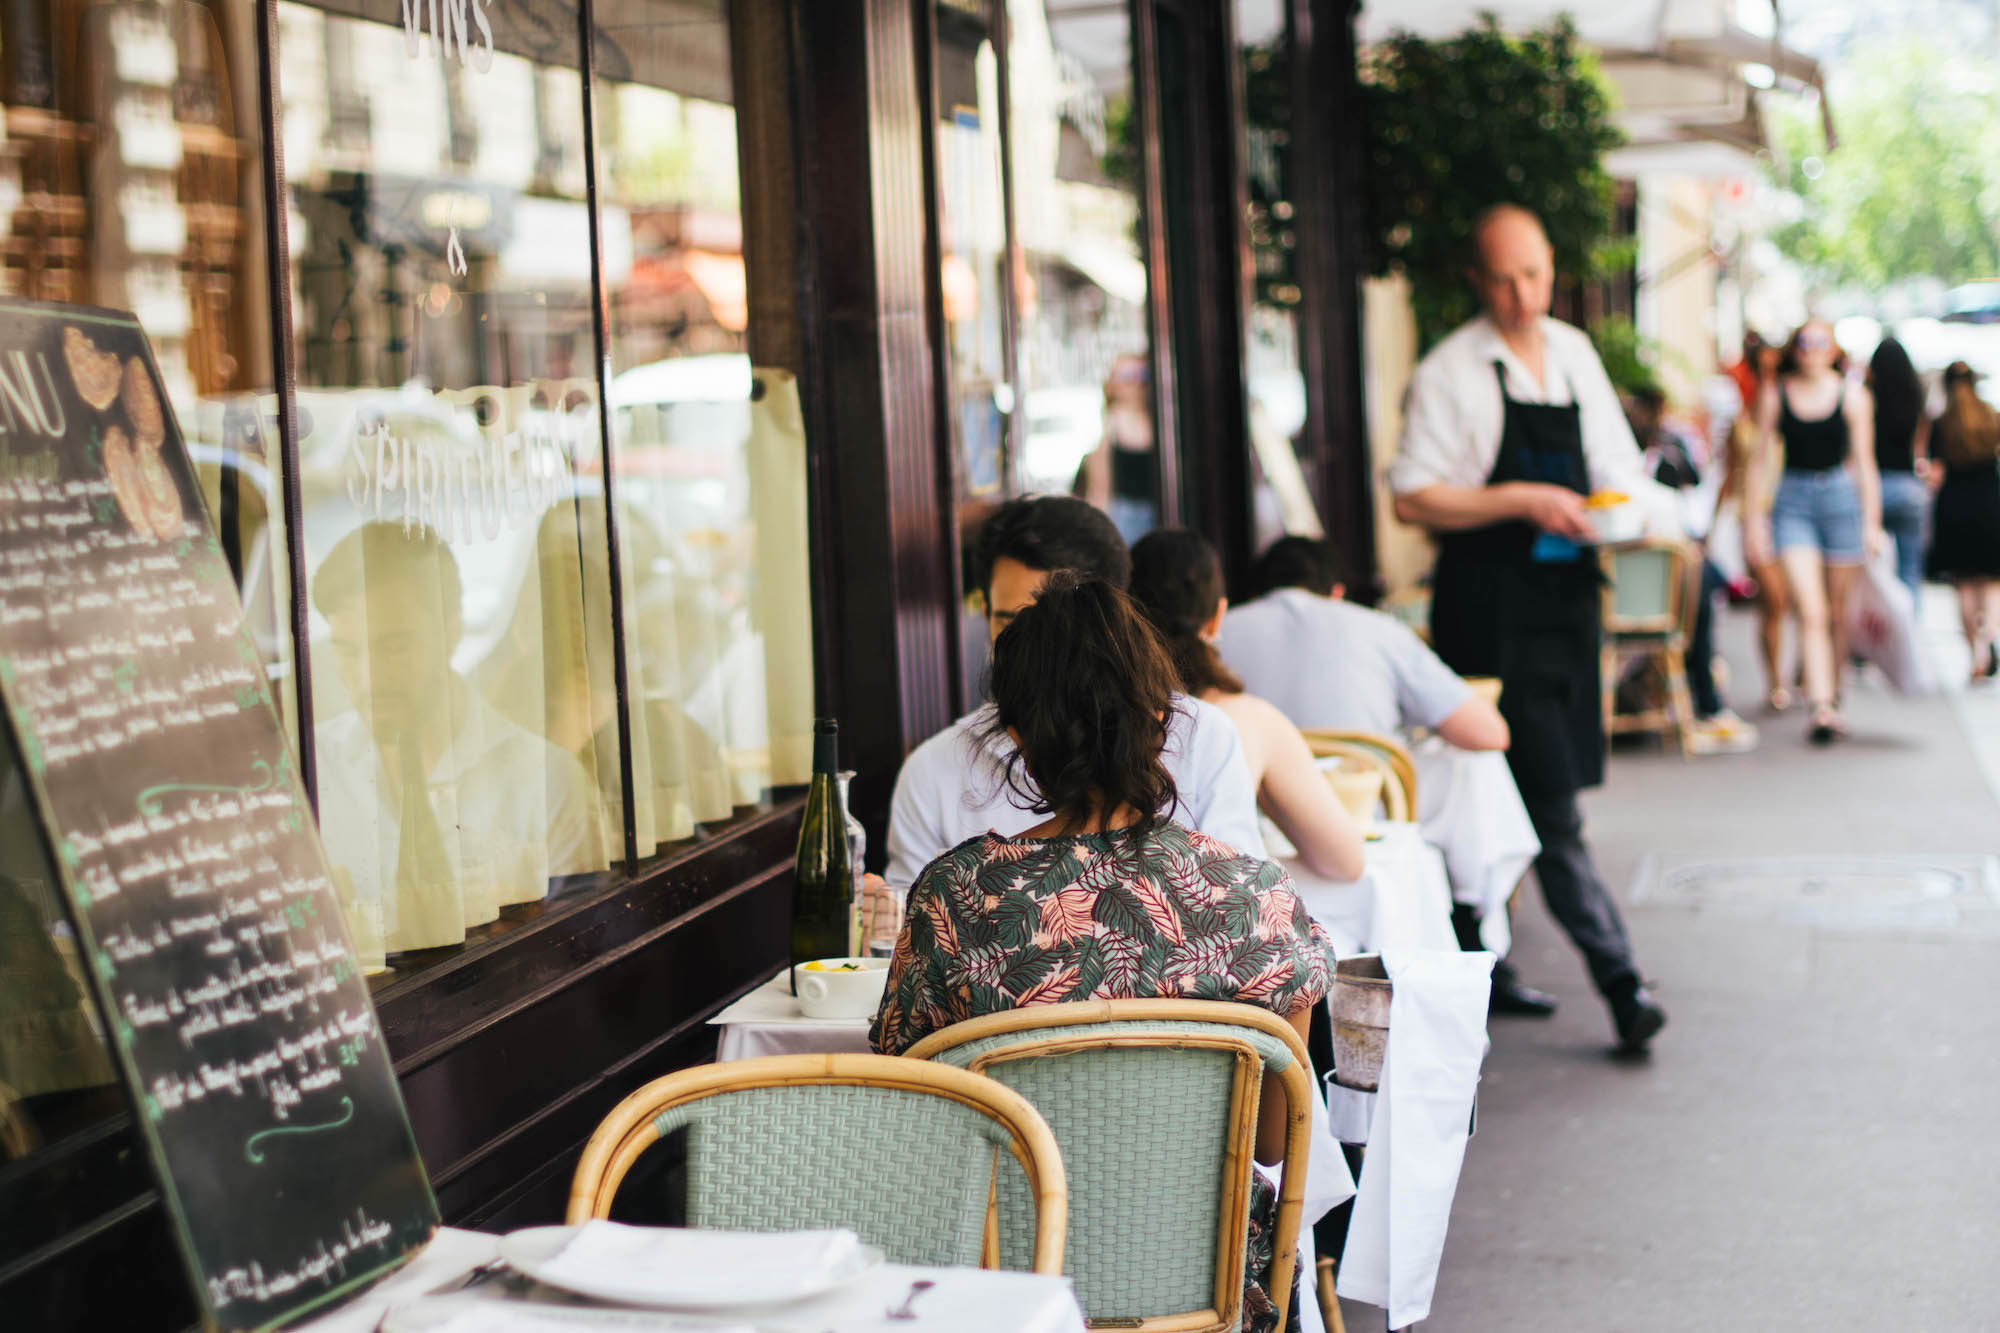 People eating out on a bistro terrace in summer in Paris.